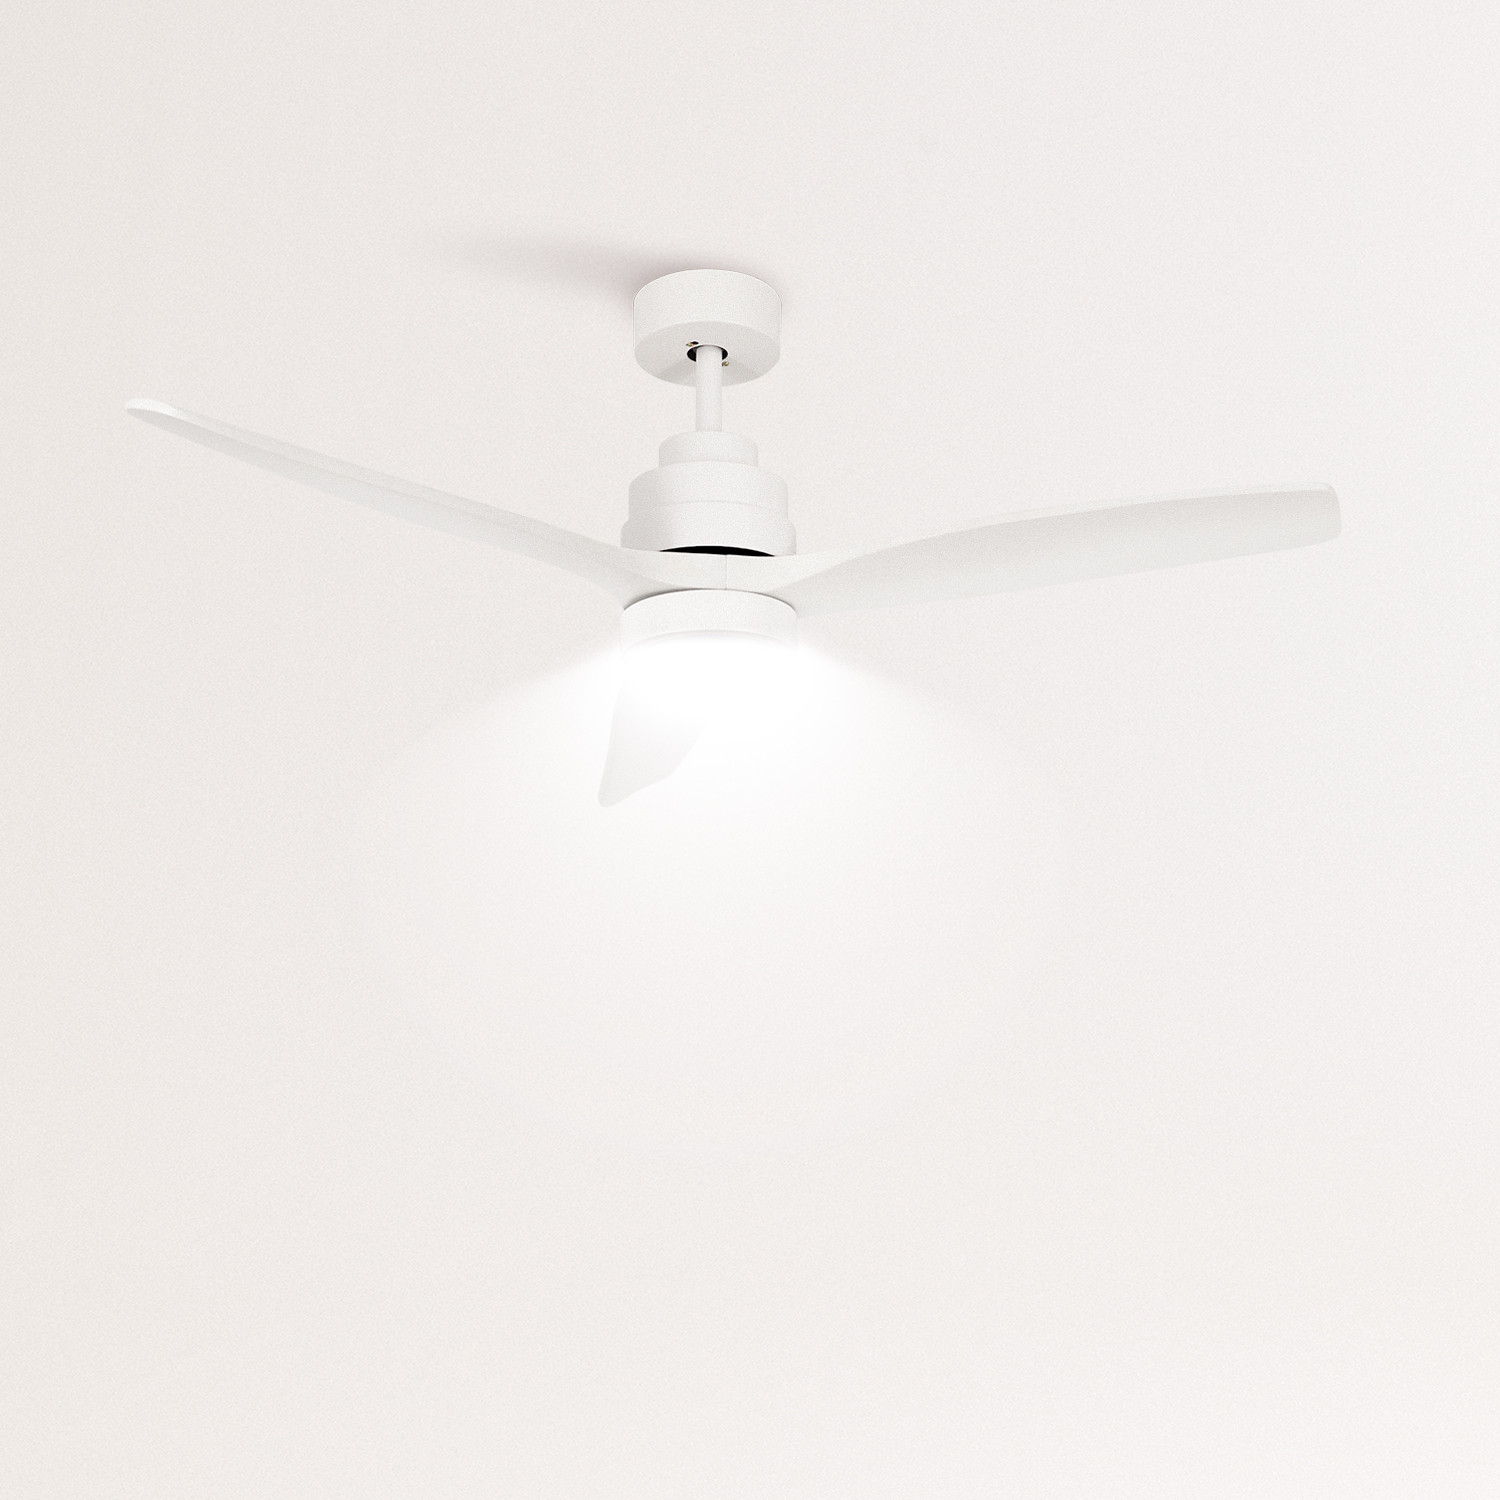 WINDLIGHT WHITE - Ceiling fan 40W DC Reverse with Light, imagen de galería 1